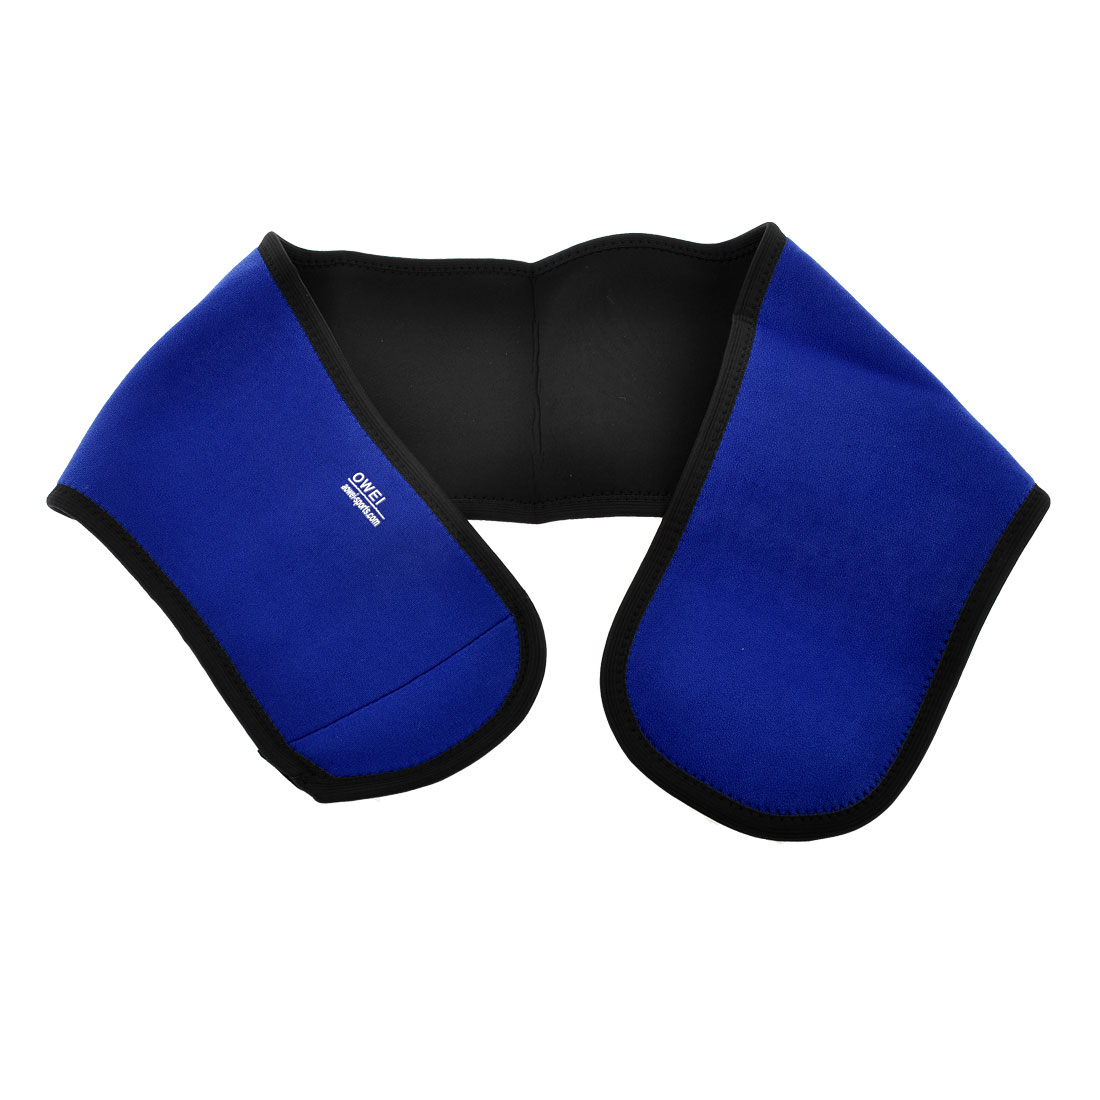 Detachable Blue Neoprene Stretchy Muscle Protect Waist Brace Support